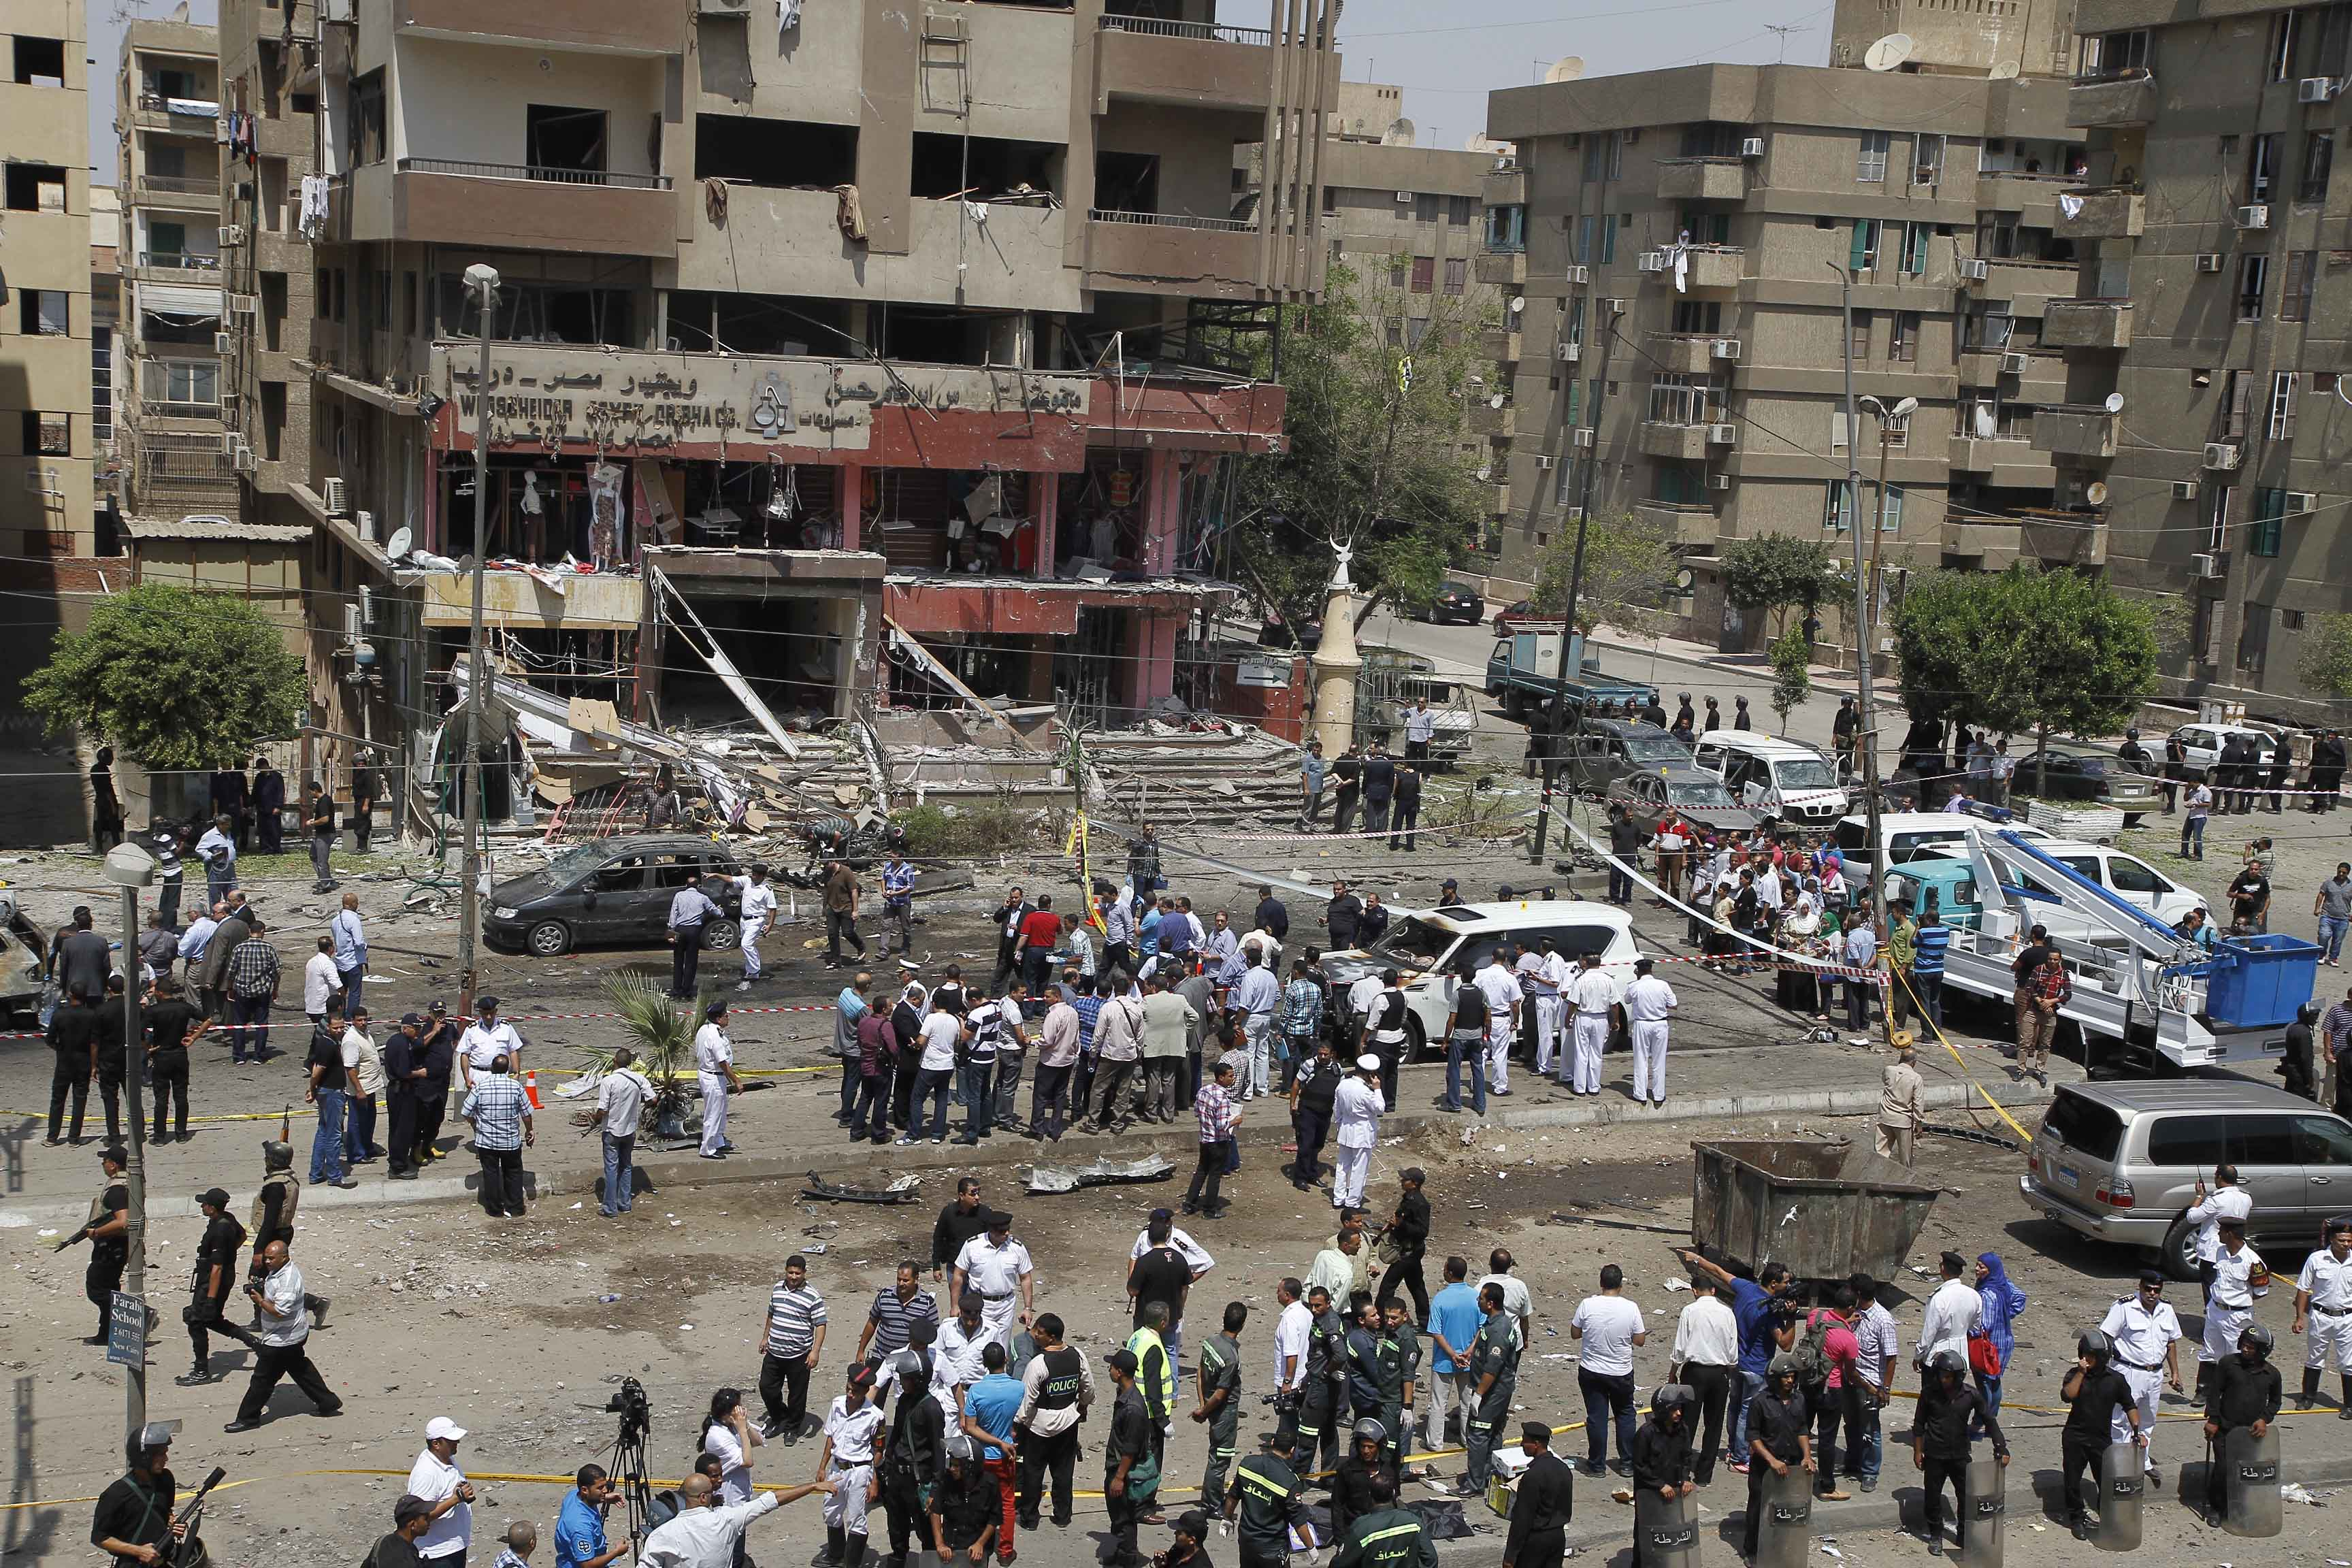 The blast injured a total of 21 people